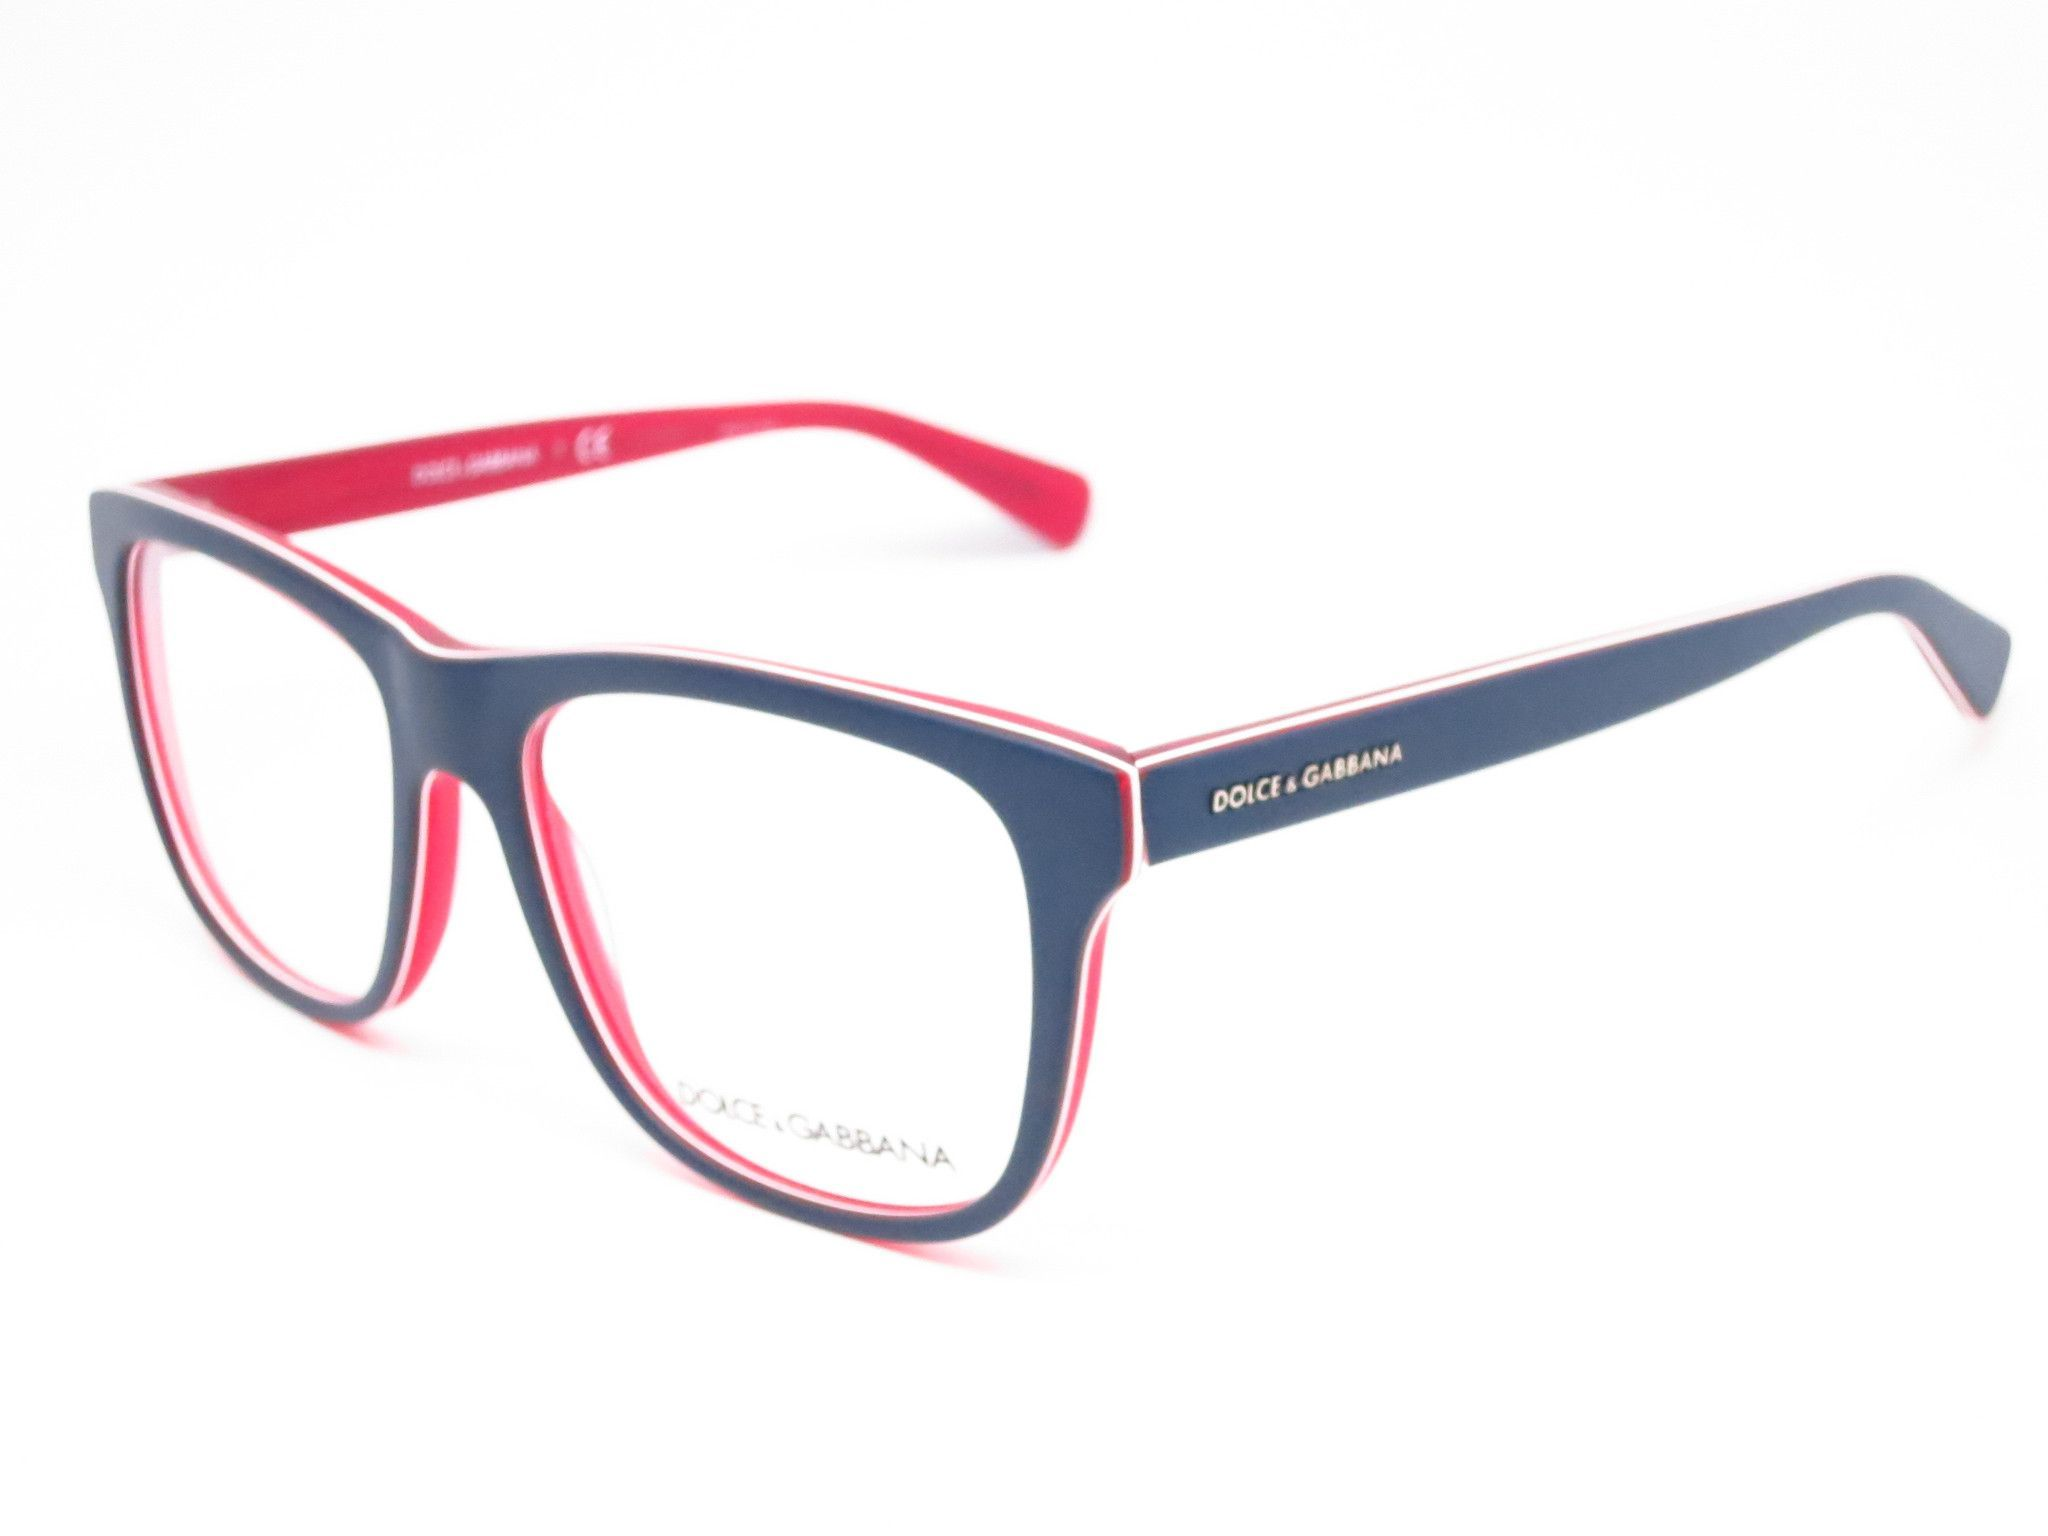 Dolce & Gabbana DG 3206 Top Blue on Matte Red Eyeglasses | Brille